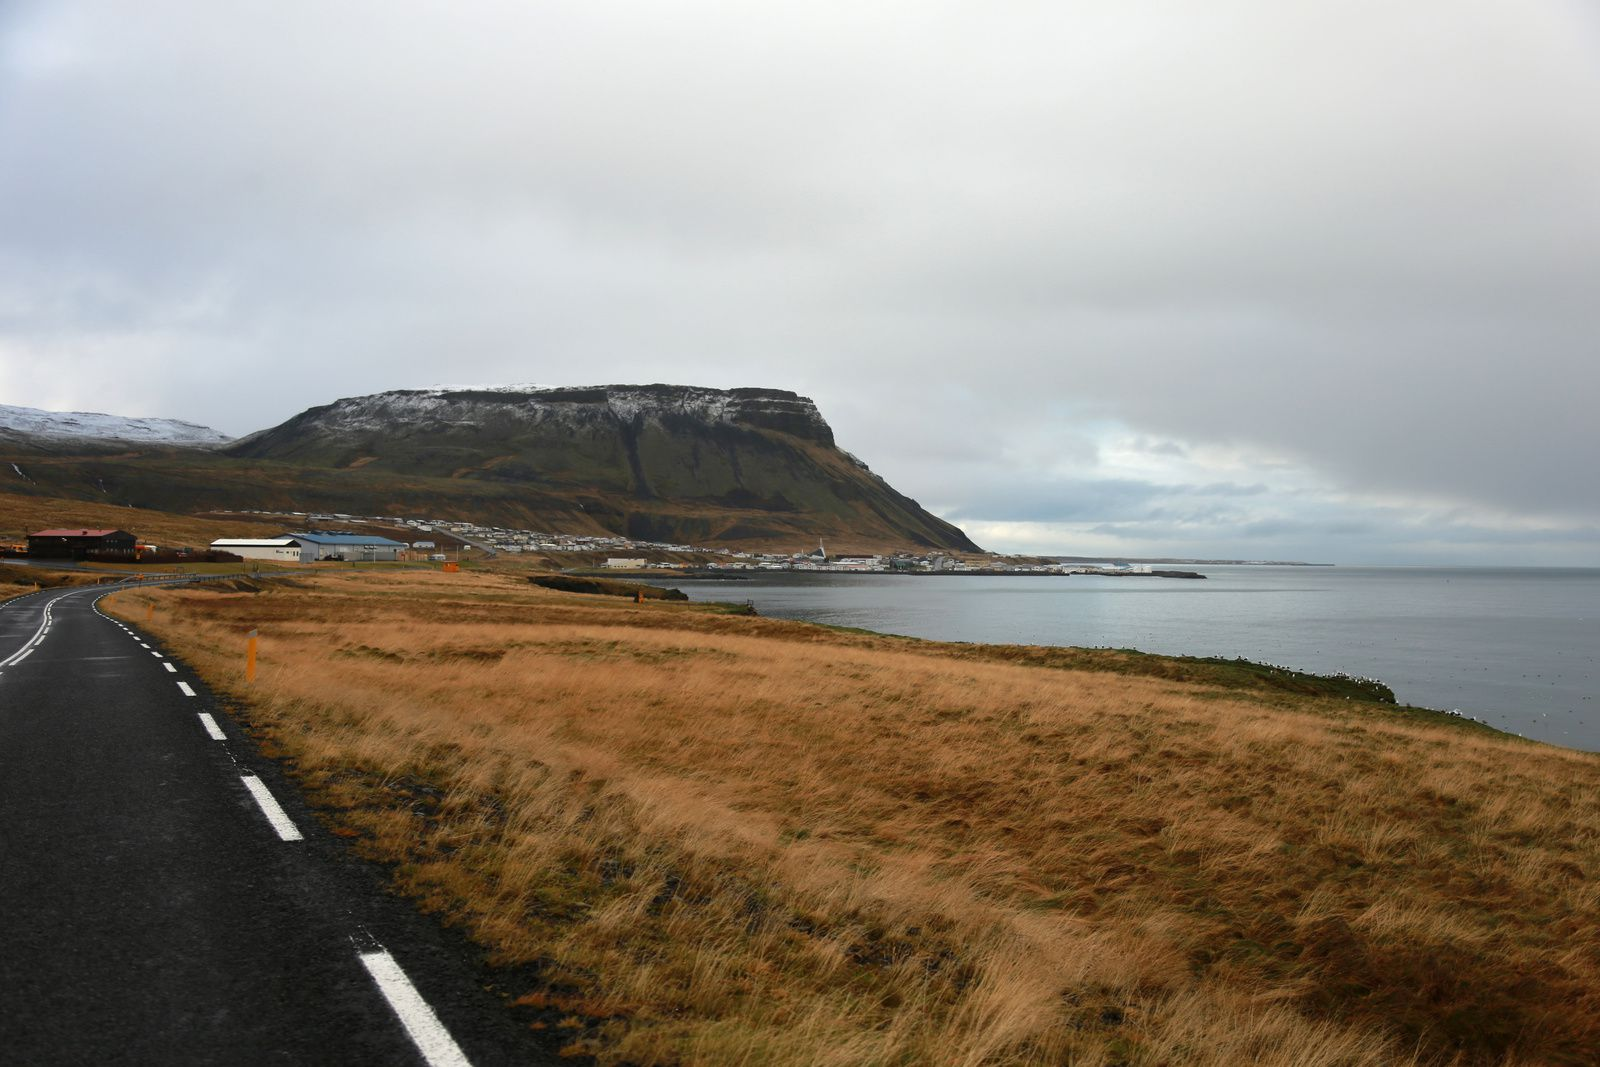 Ólafsvík, its port and modern church, at the foot of the volcano Ólafsvíkurenni - photos © Bernard Duyck 10.2016